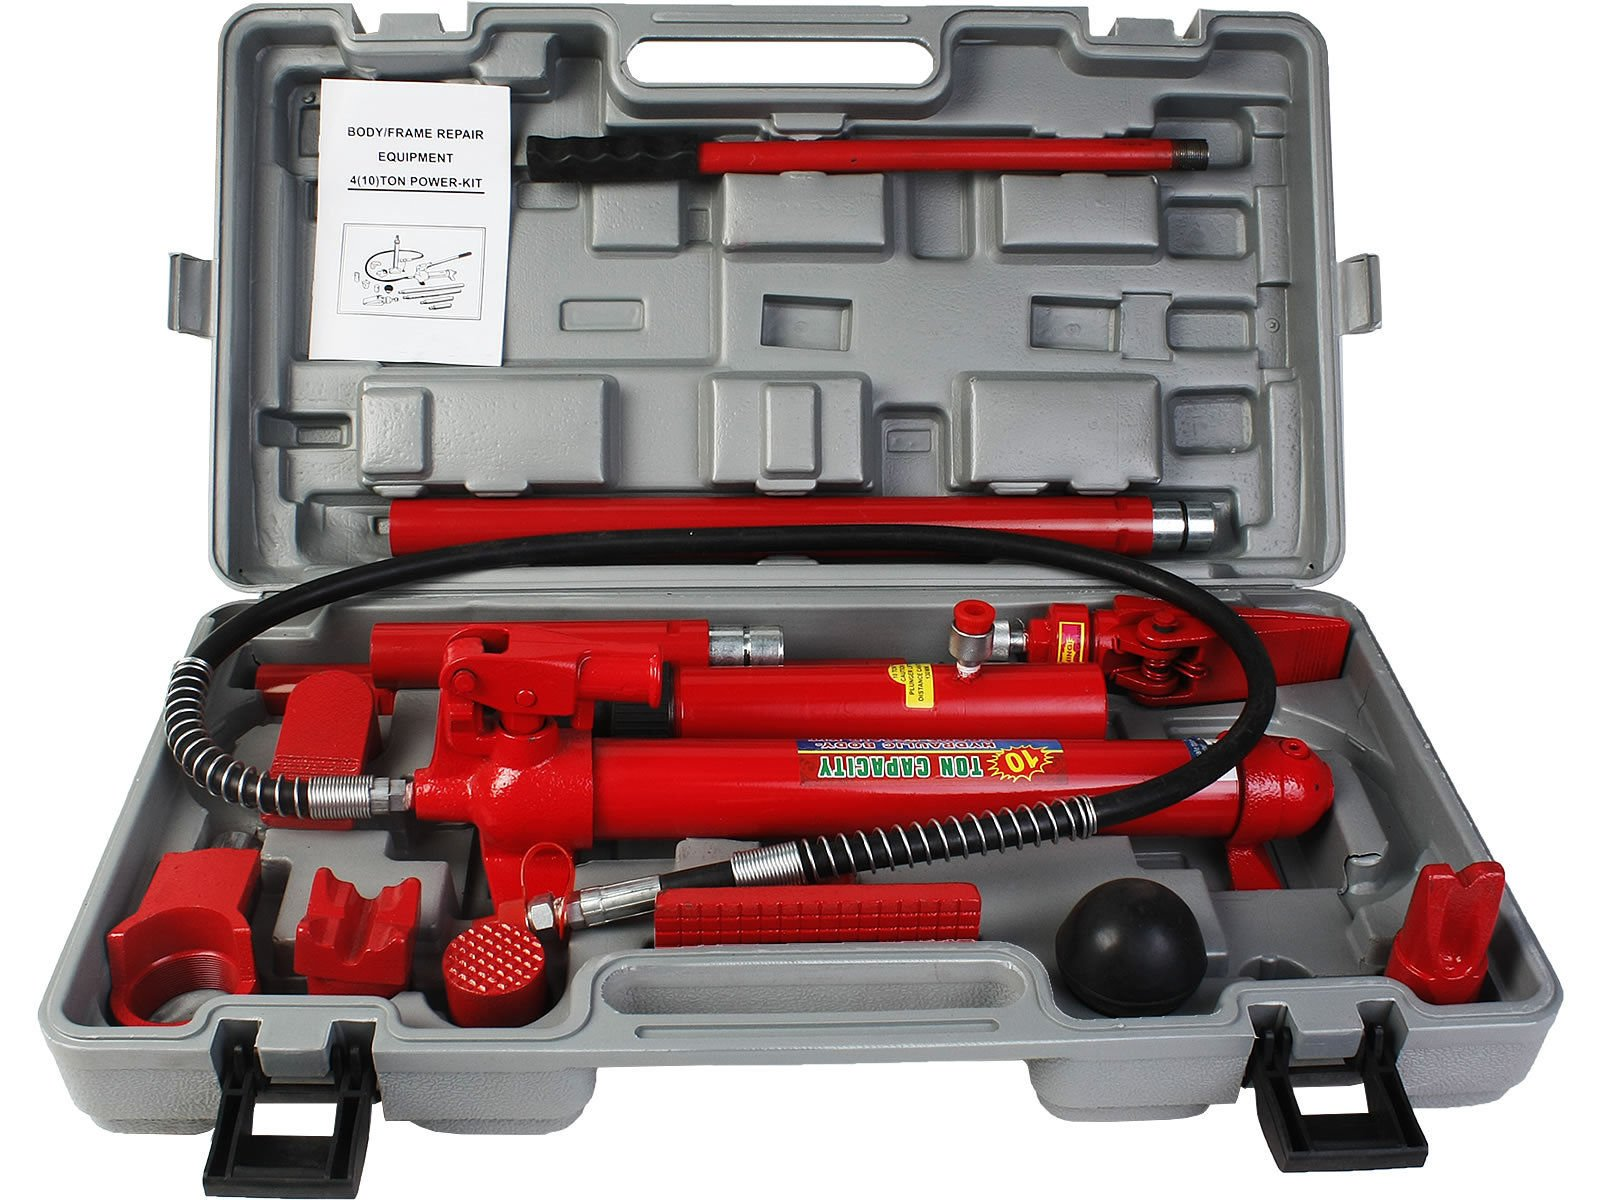 Hydraulic Body Frame Repair Kit Jack Auto Shop Tool Heavy Duty Set Complete - House Deals